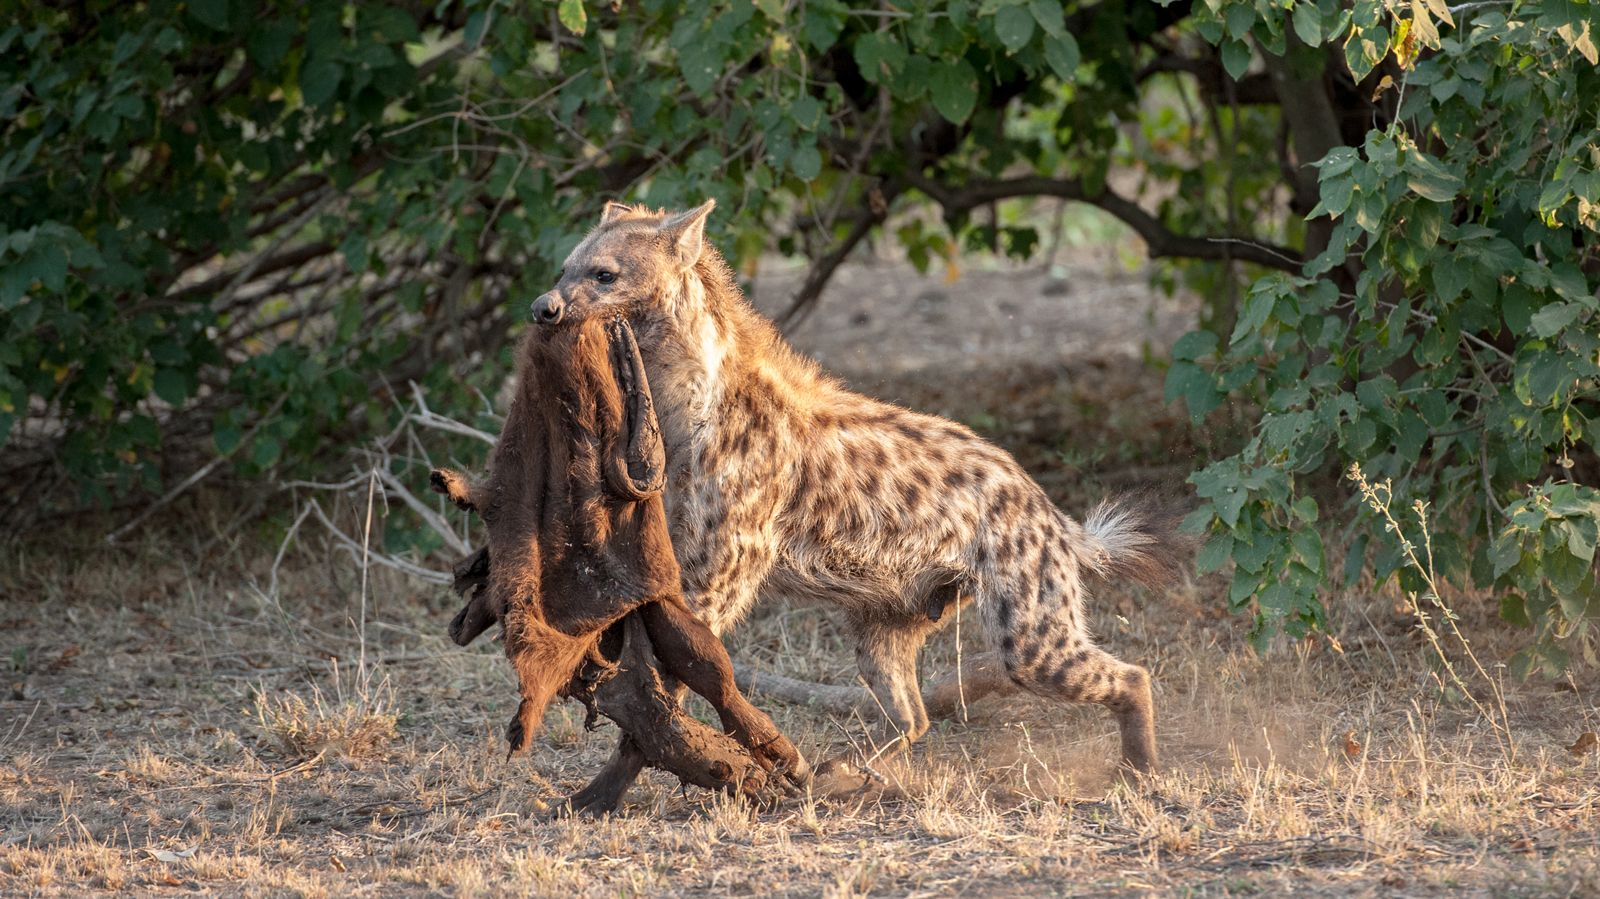 """A hyena carries the skin of a young buffalo in its mouth in Kruger National Park ©<a href=""""http://www.africaphotography.co.za/"""" target=""""_blank"""">Corlette Wessels</a>"""